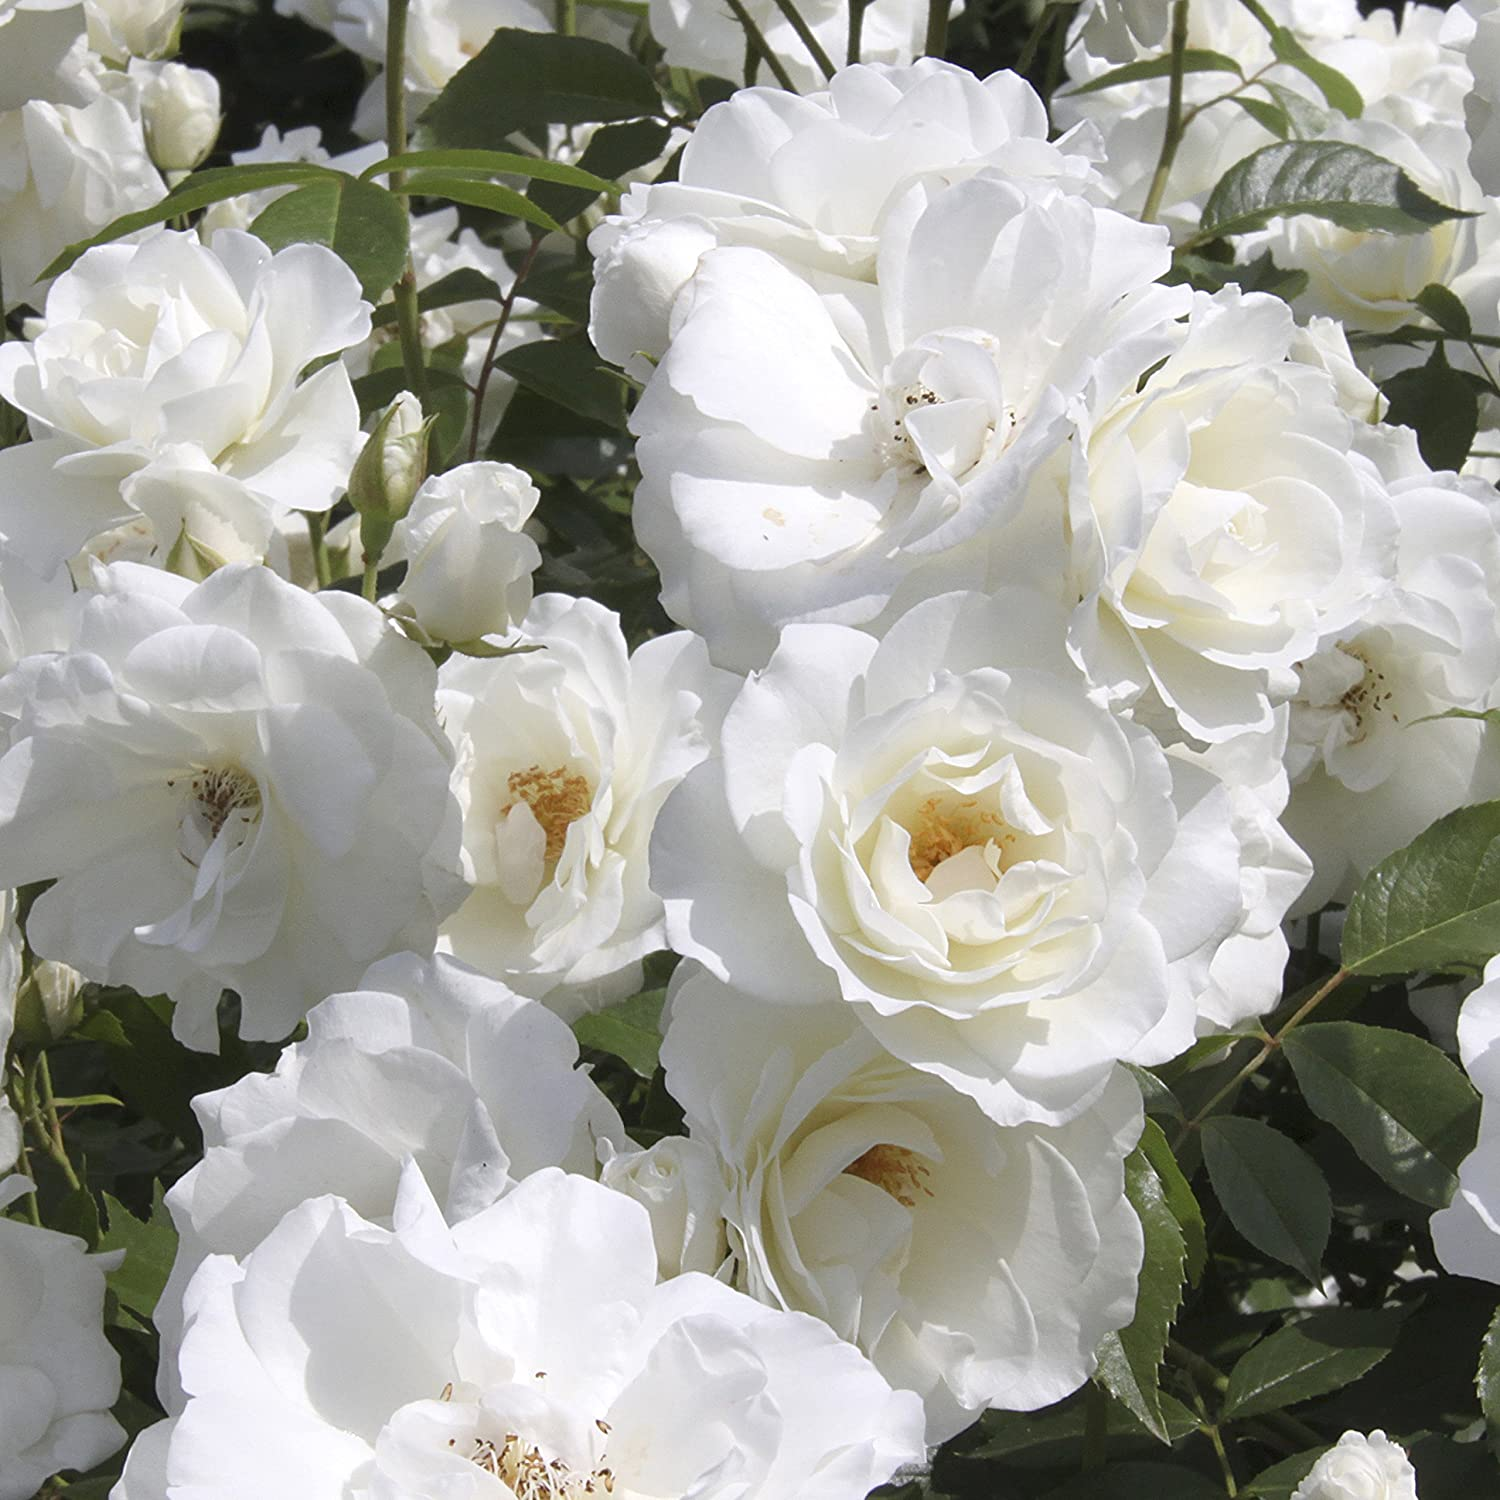 Garden Glamour Rose Bush Collection in 5 Varieties bare root Yougarden 3_530011